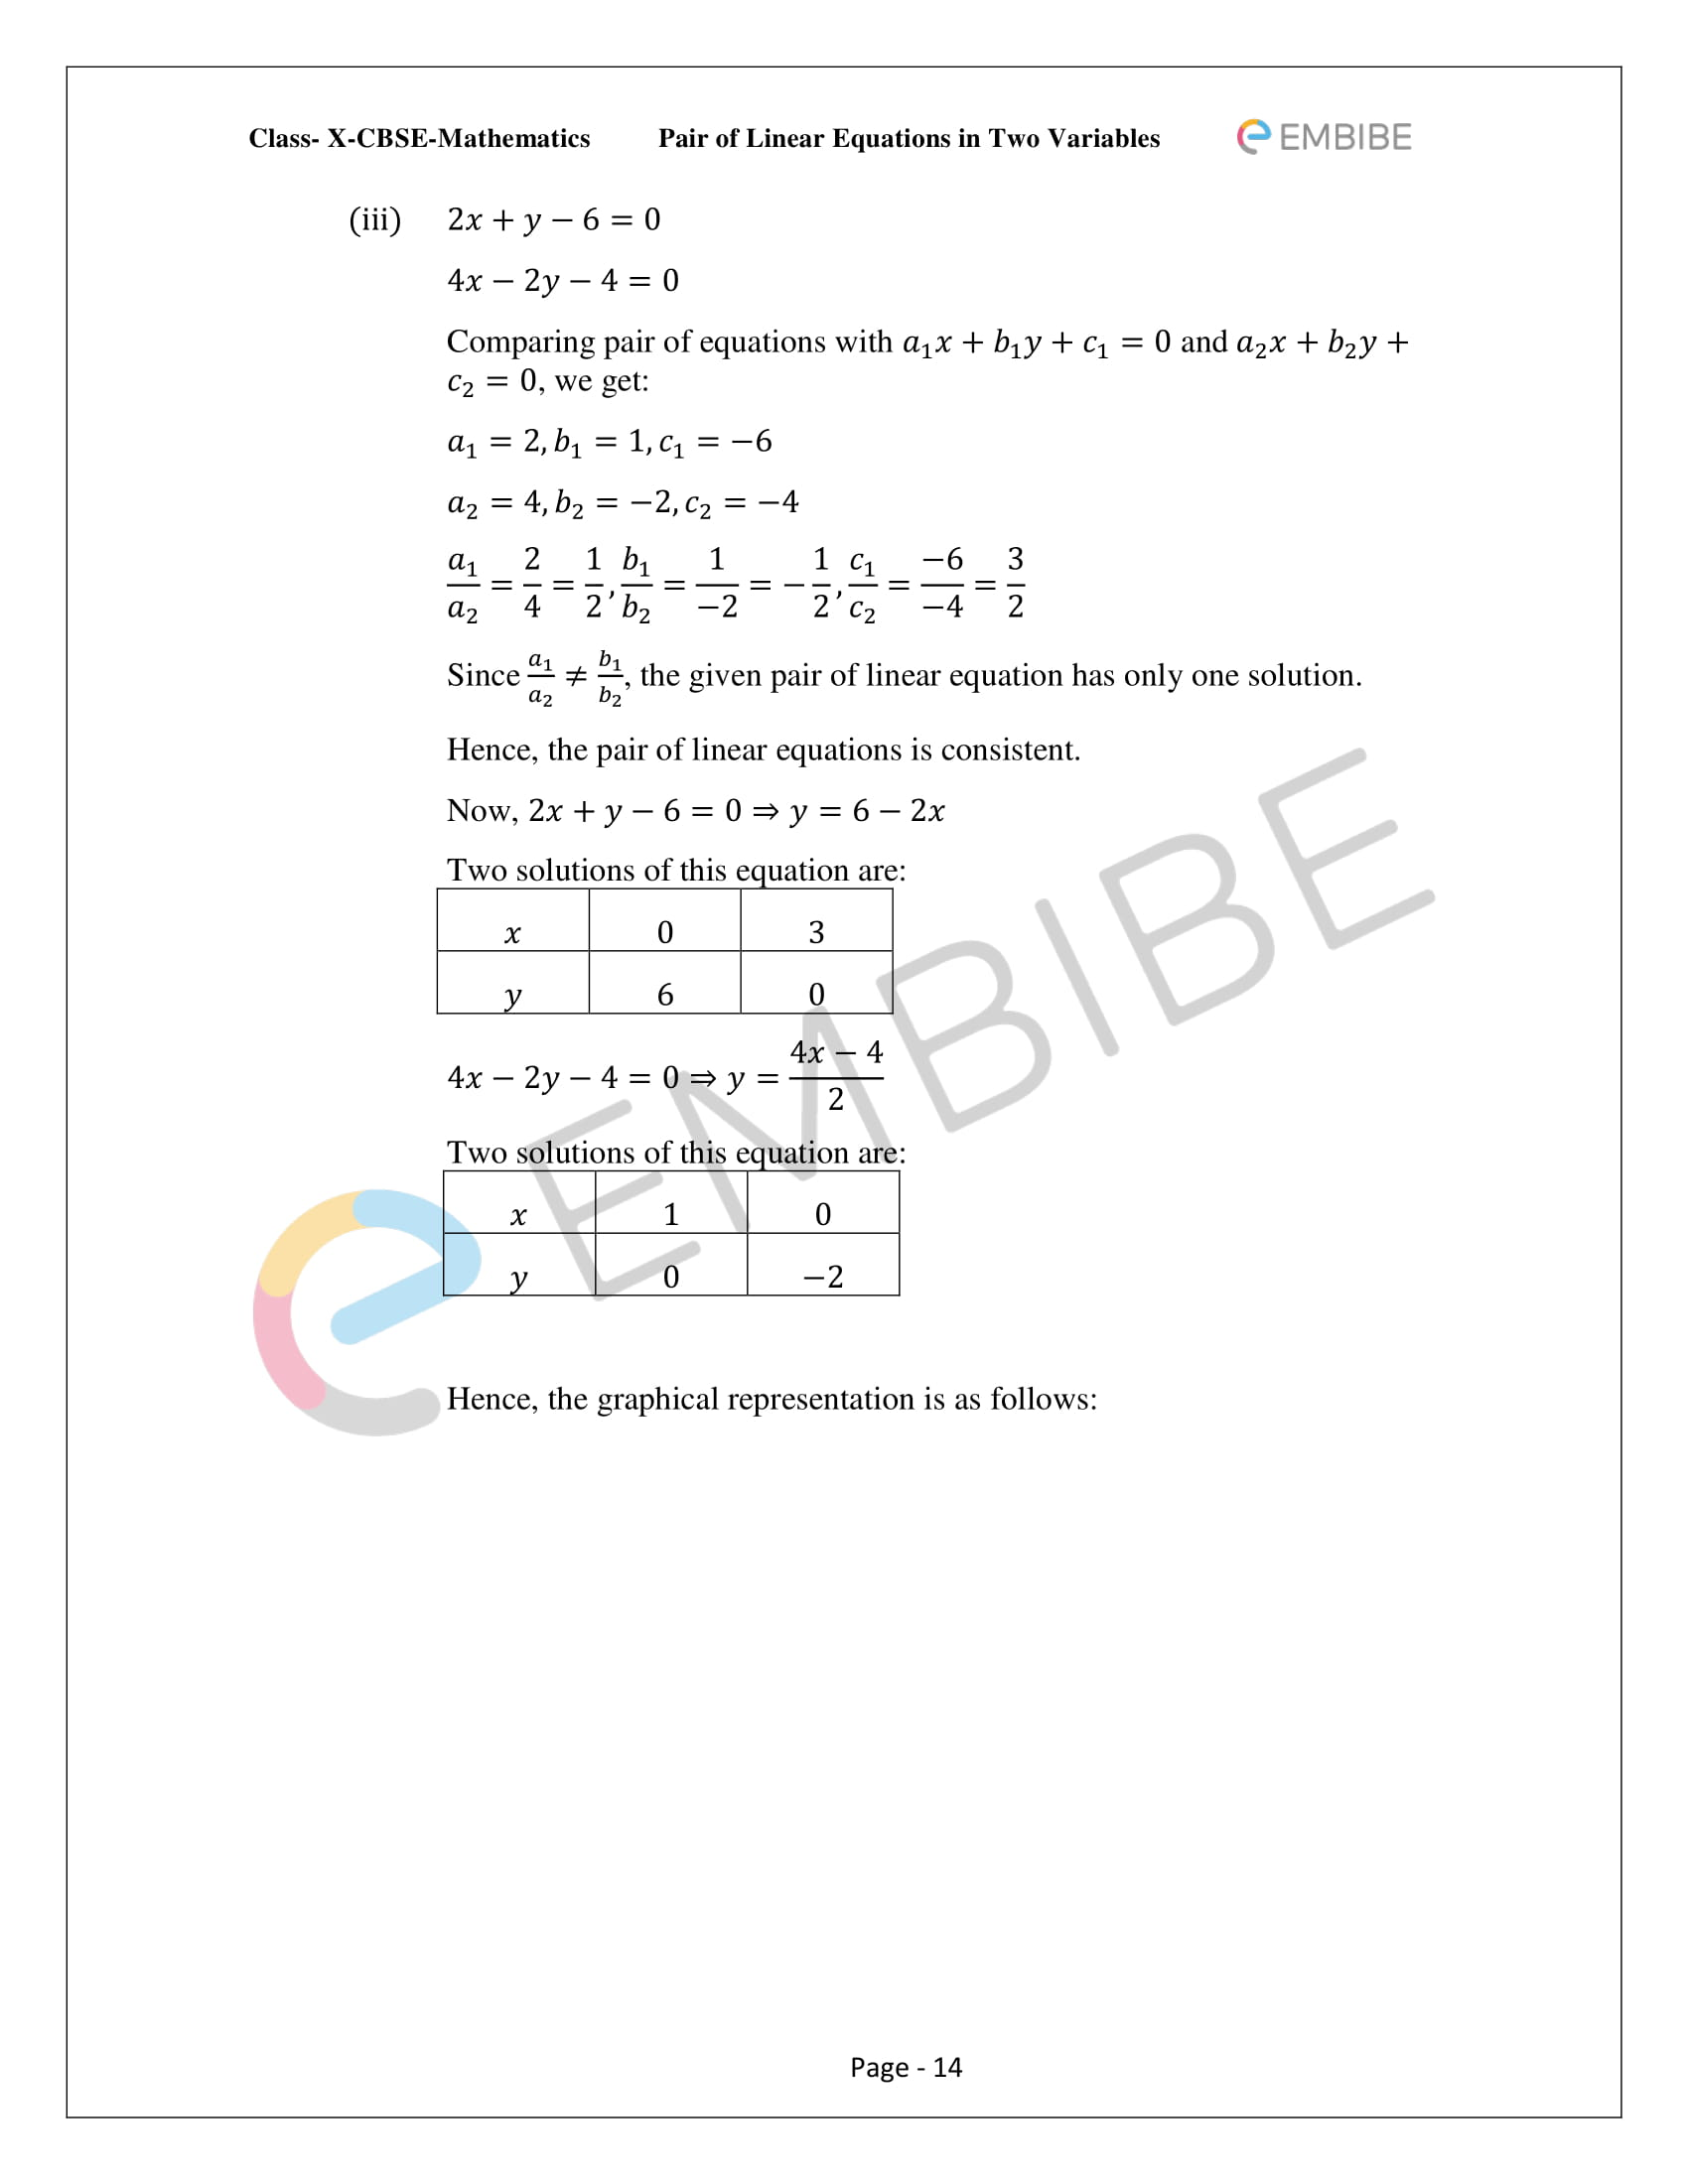 CBSE NCERT Solutions For Class 10 Maths Chapter 3 - Pair of Linear Equations In Two Variables - 14